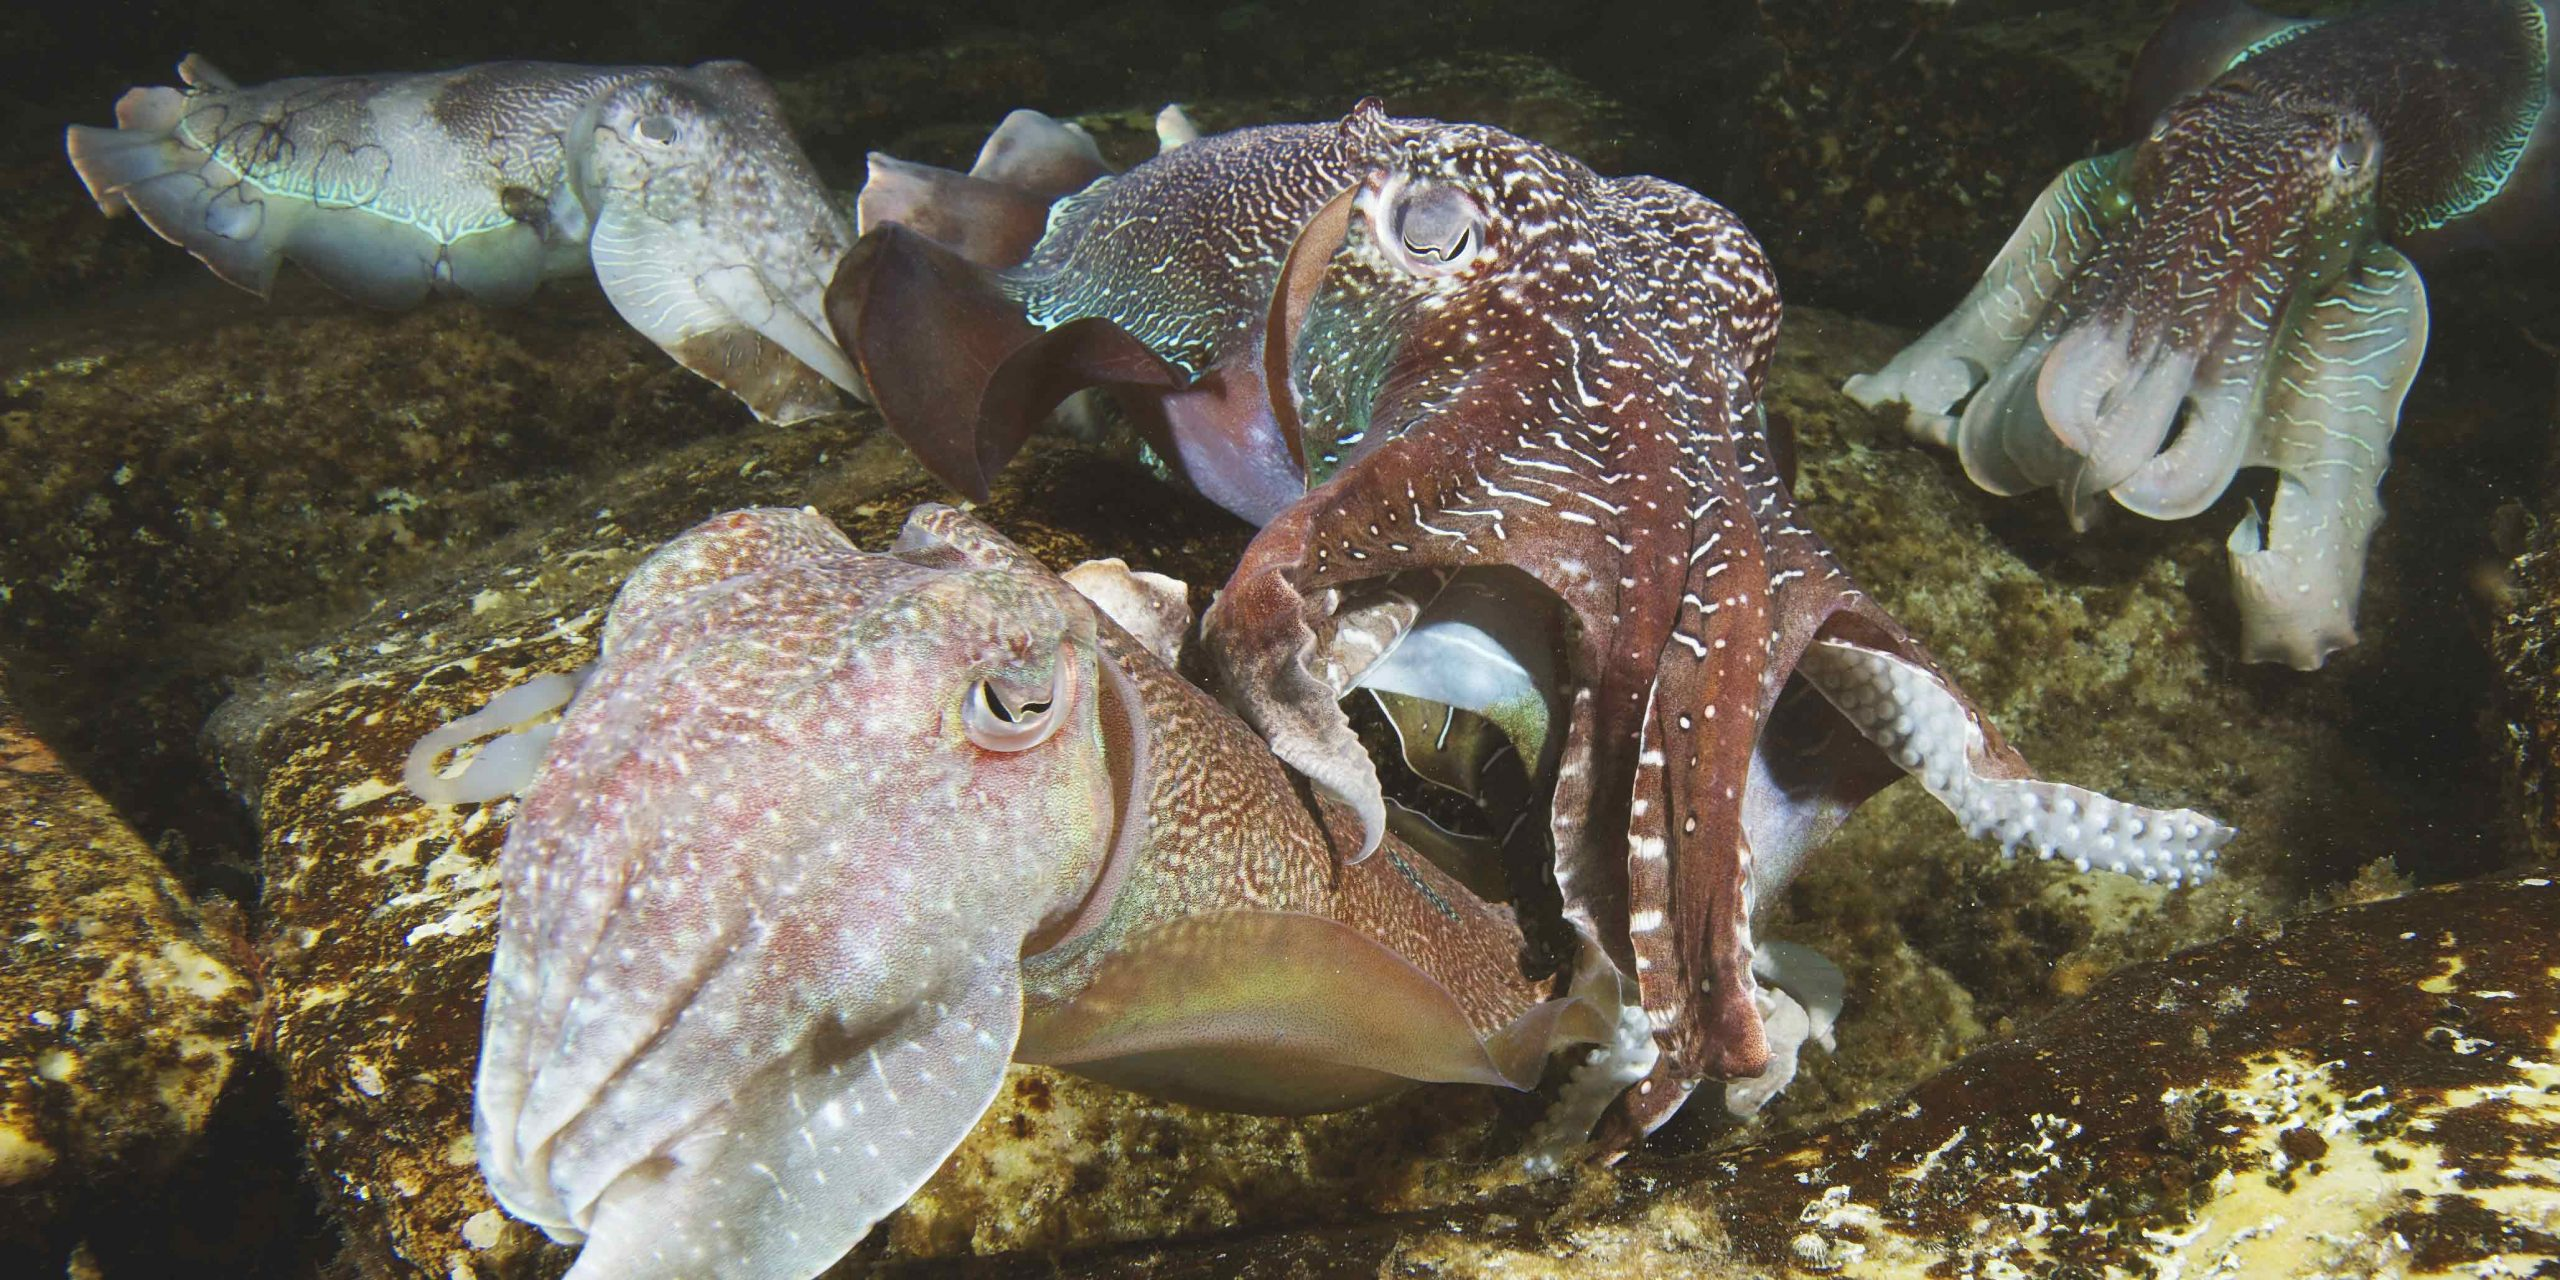 lots of cuttlefish